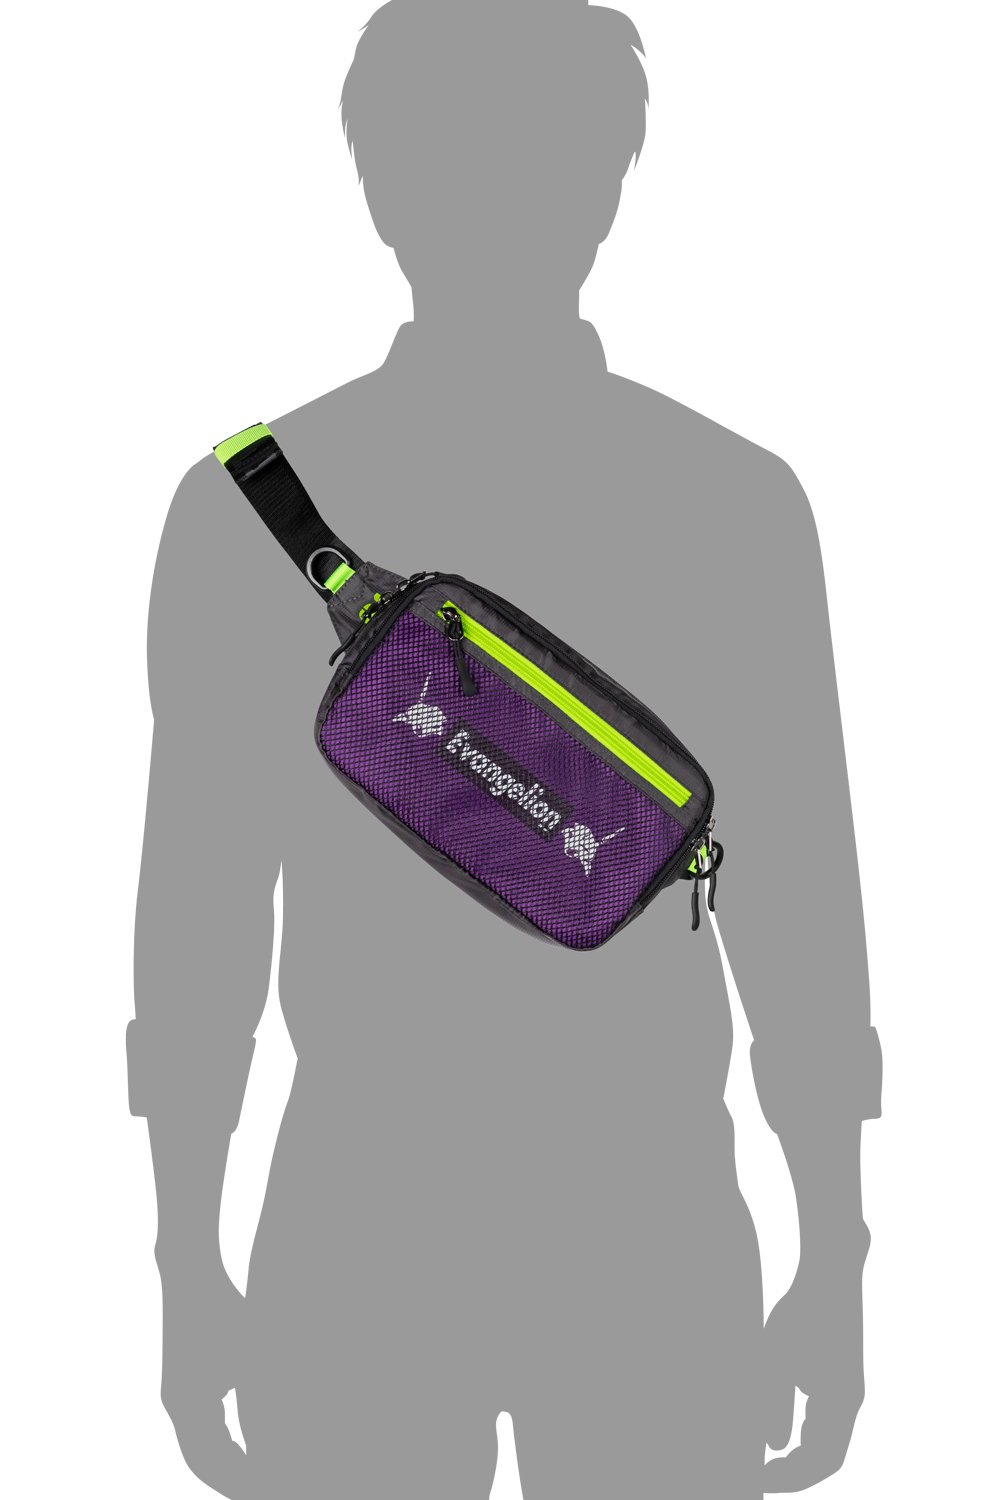 EVANGELION WAIST POUCH by FIRE FIRST (EVA-01 MODEL)